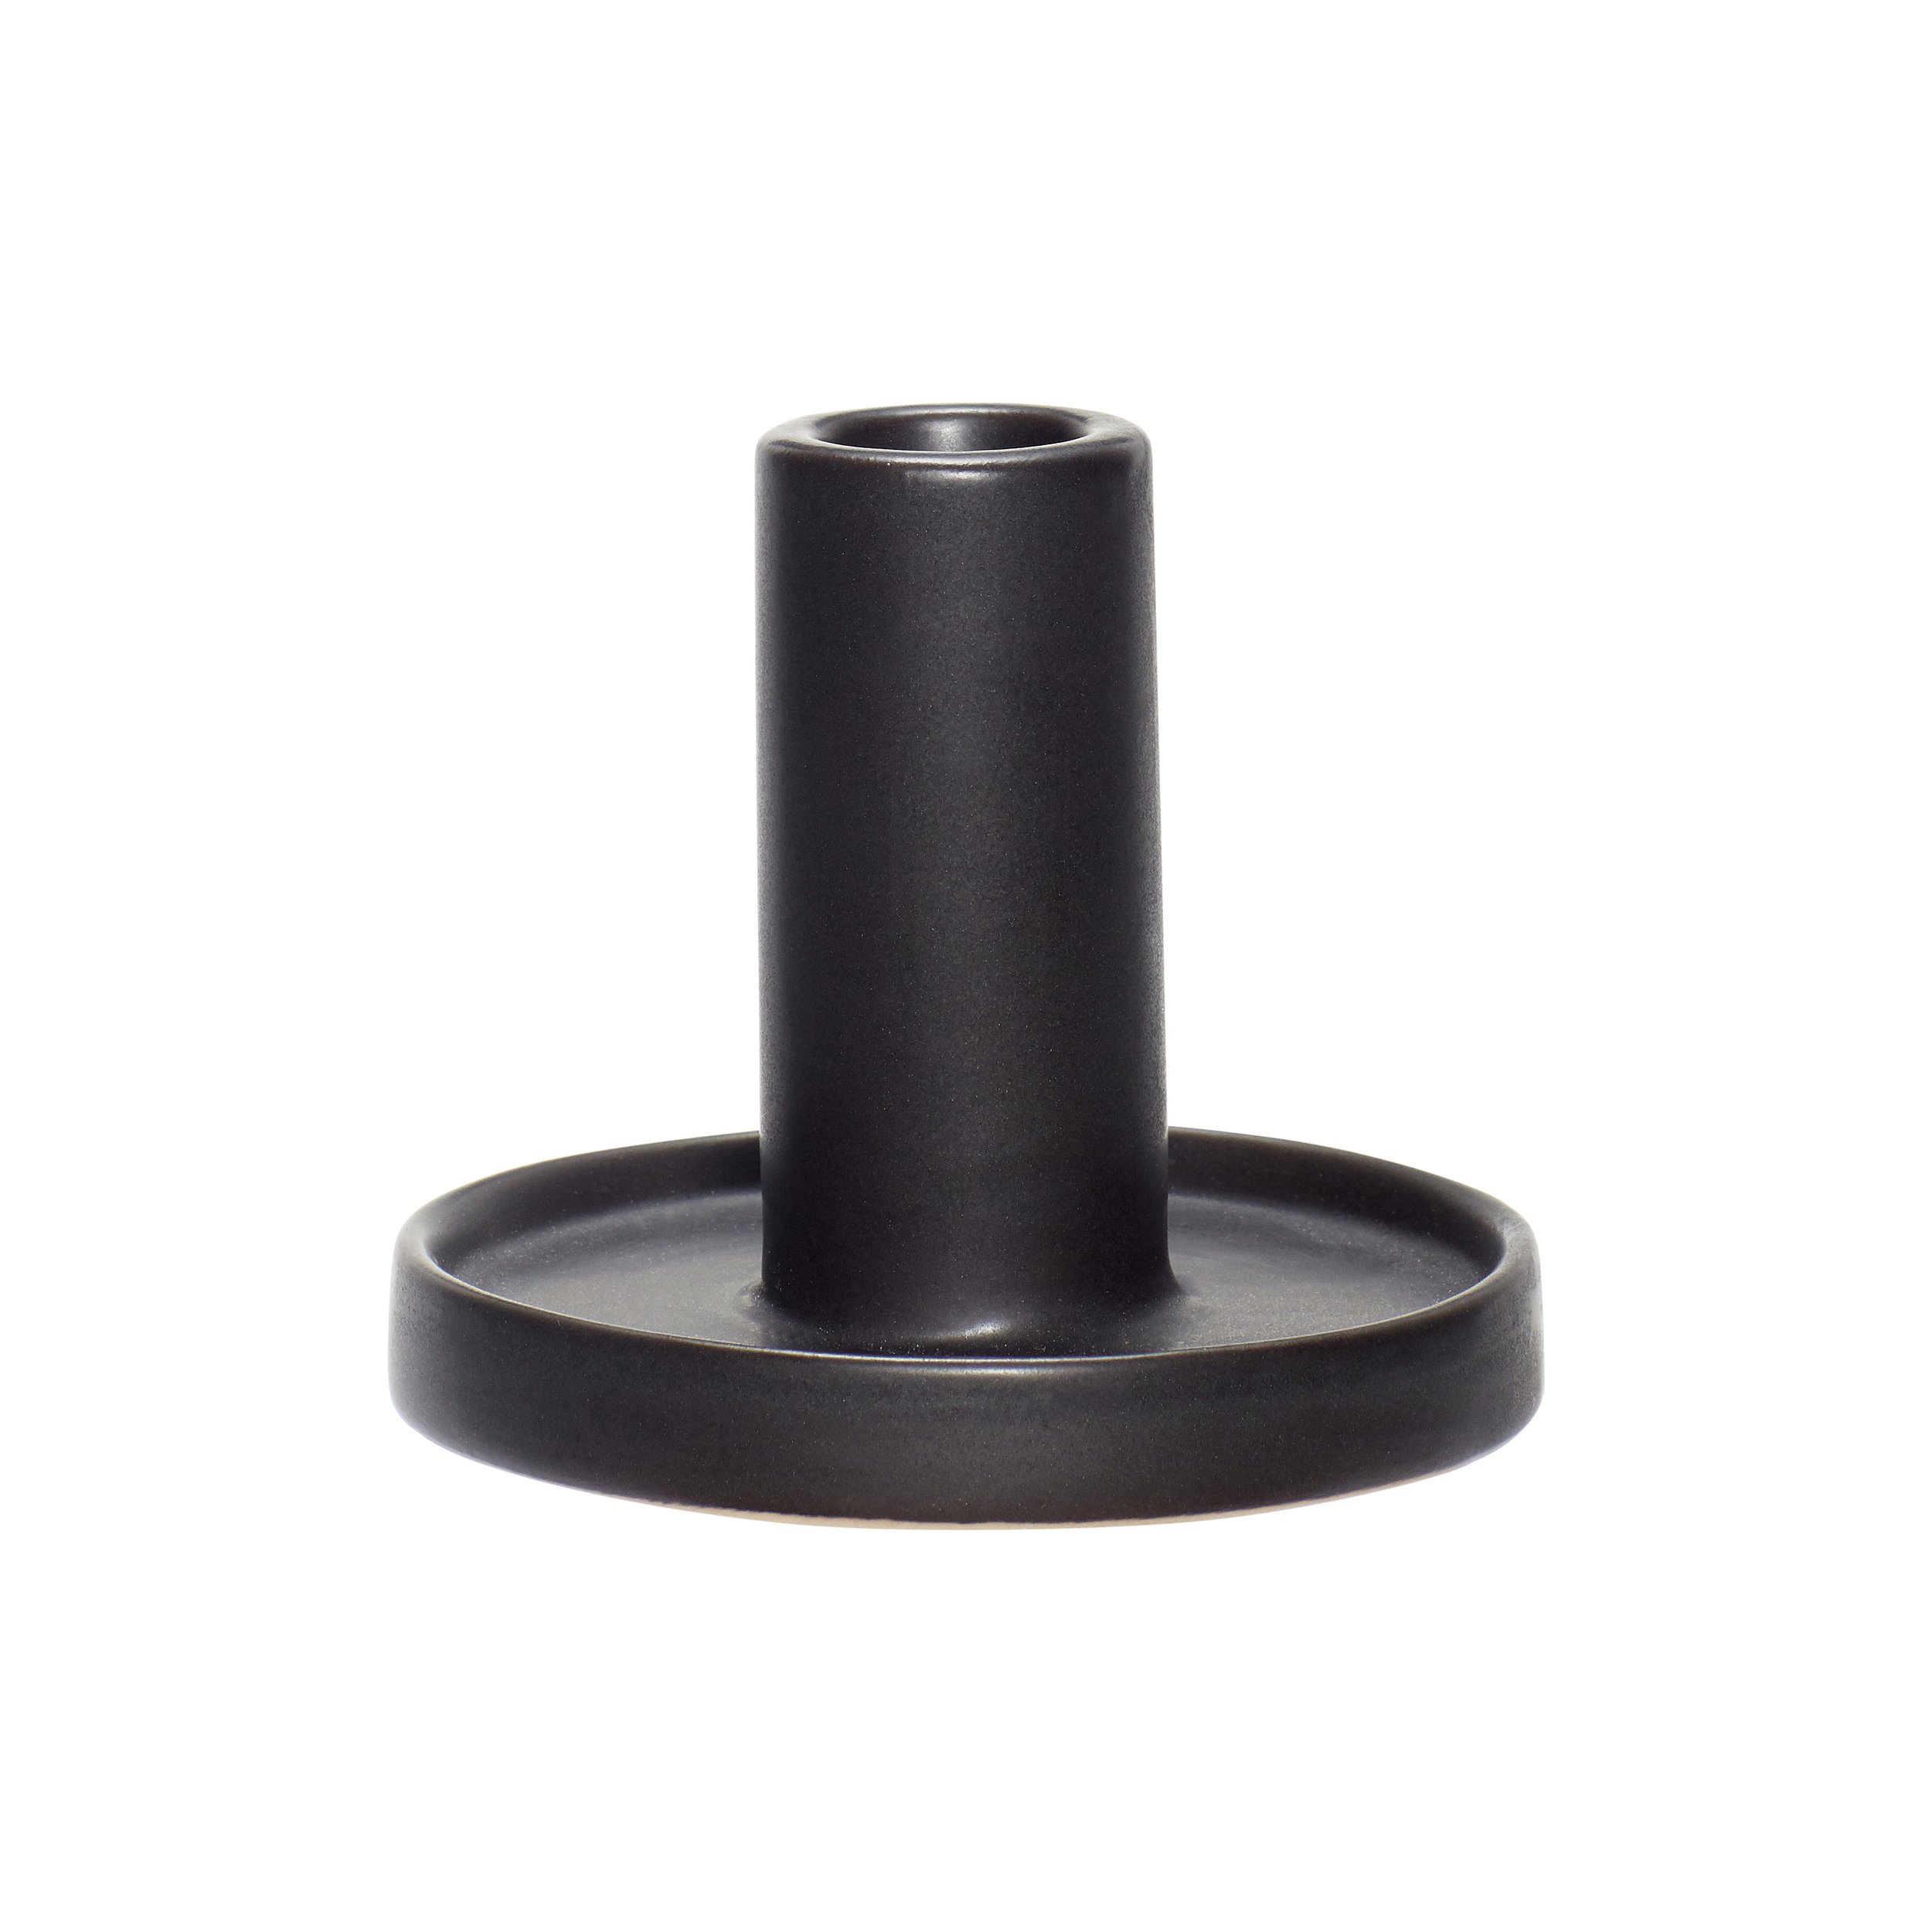 #034 Tall Black Ceramic Candle Stick    (available end of September 2018)   10cm x H8cm Hire Price - £1.50 Minimum Order 10 Current Stock Available 60